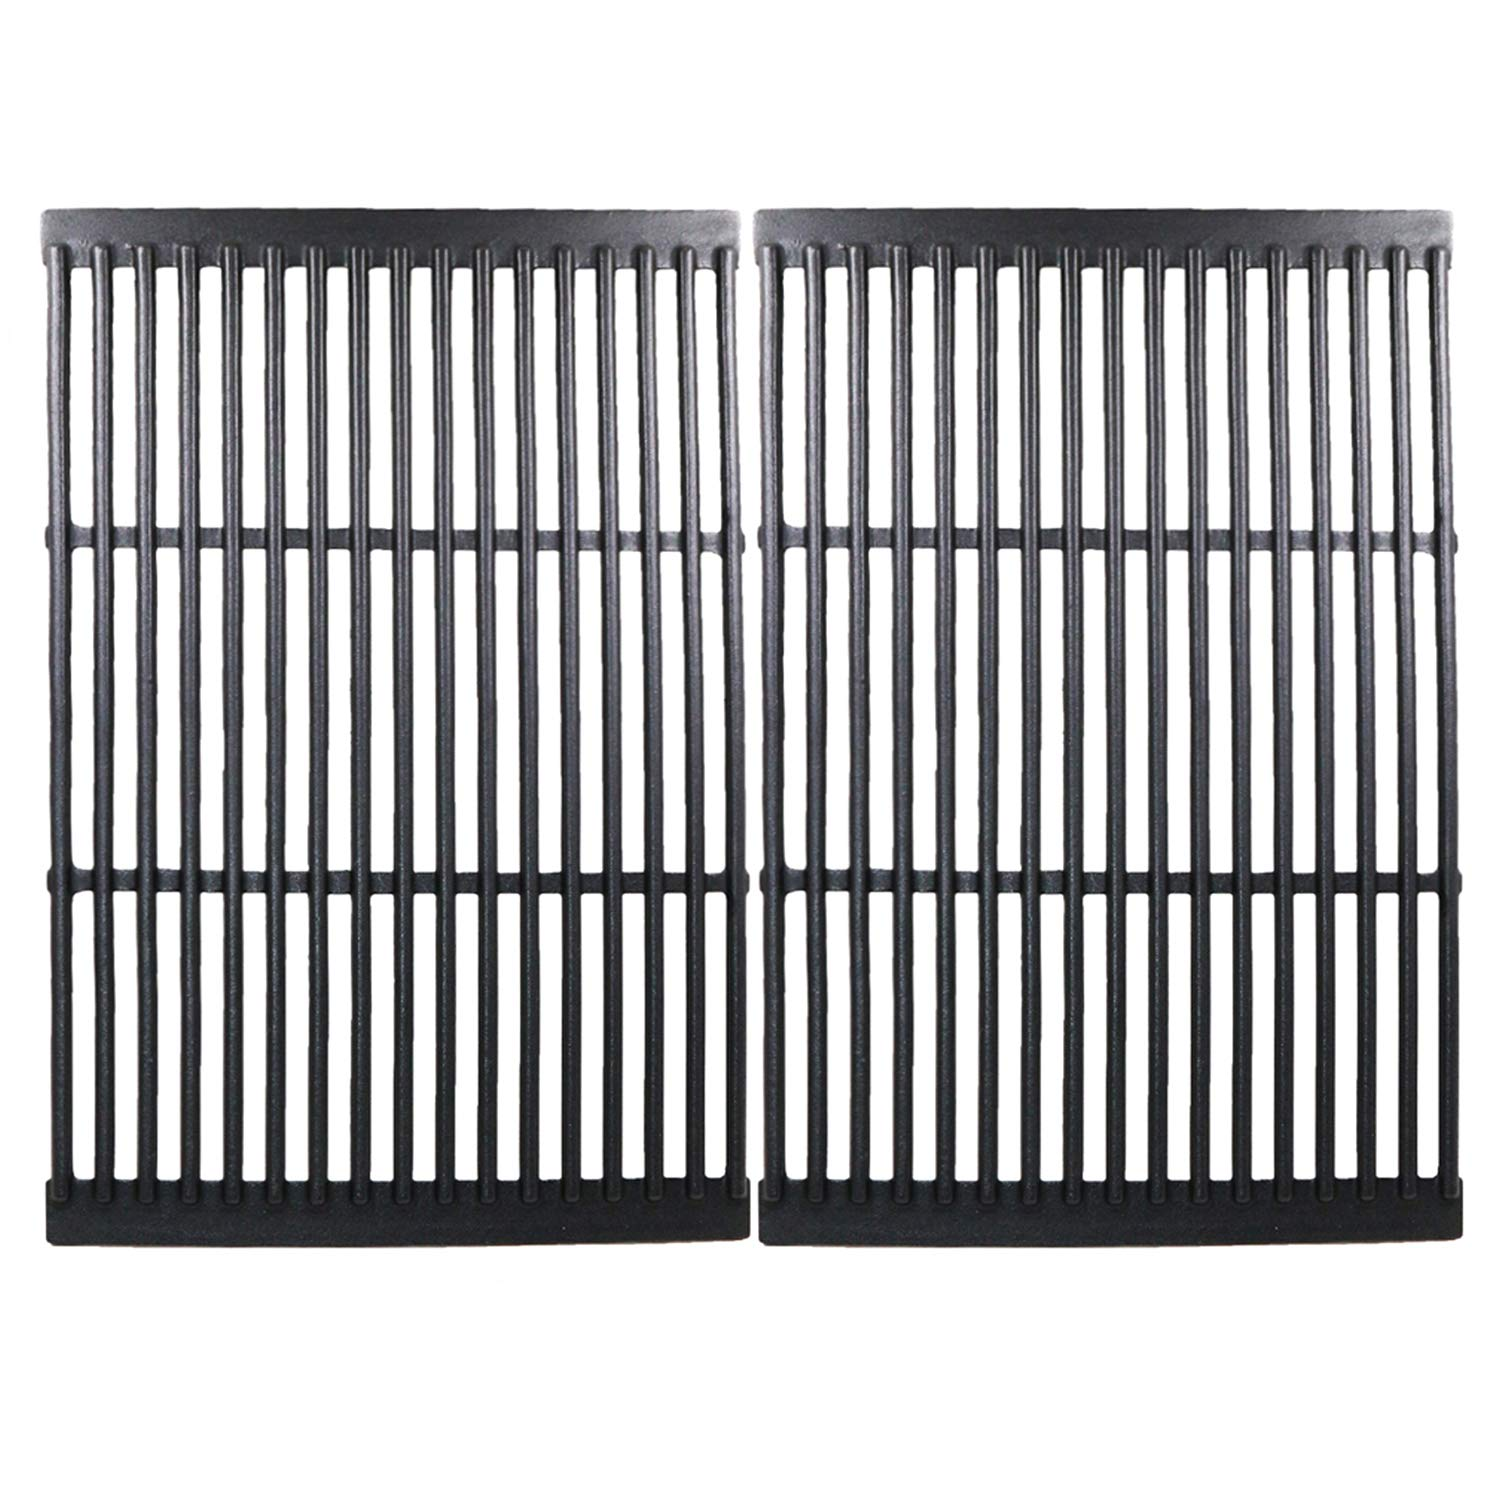 Hisencn Replacement Cast Iron Cooking Grid Porcelain Coated Set of 2 for Gas Grill Models by CharBroil, Brinkmann, Charmglow, Broil-Mate, Grill Pro, Grill Zone, Sterling, Turbo, Grill Chef and Others